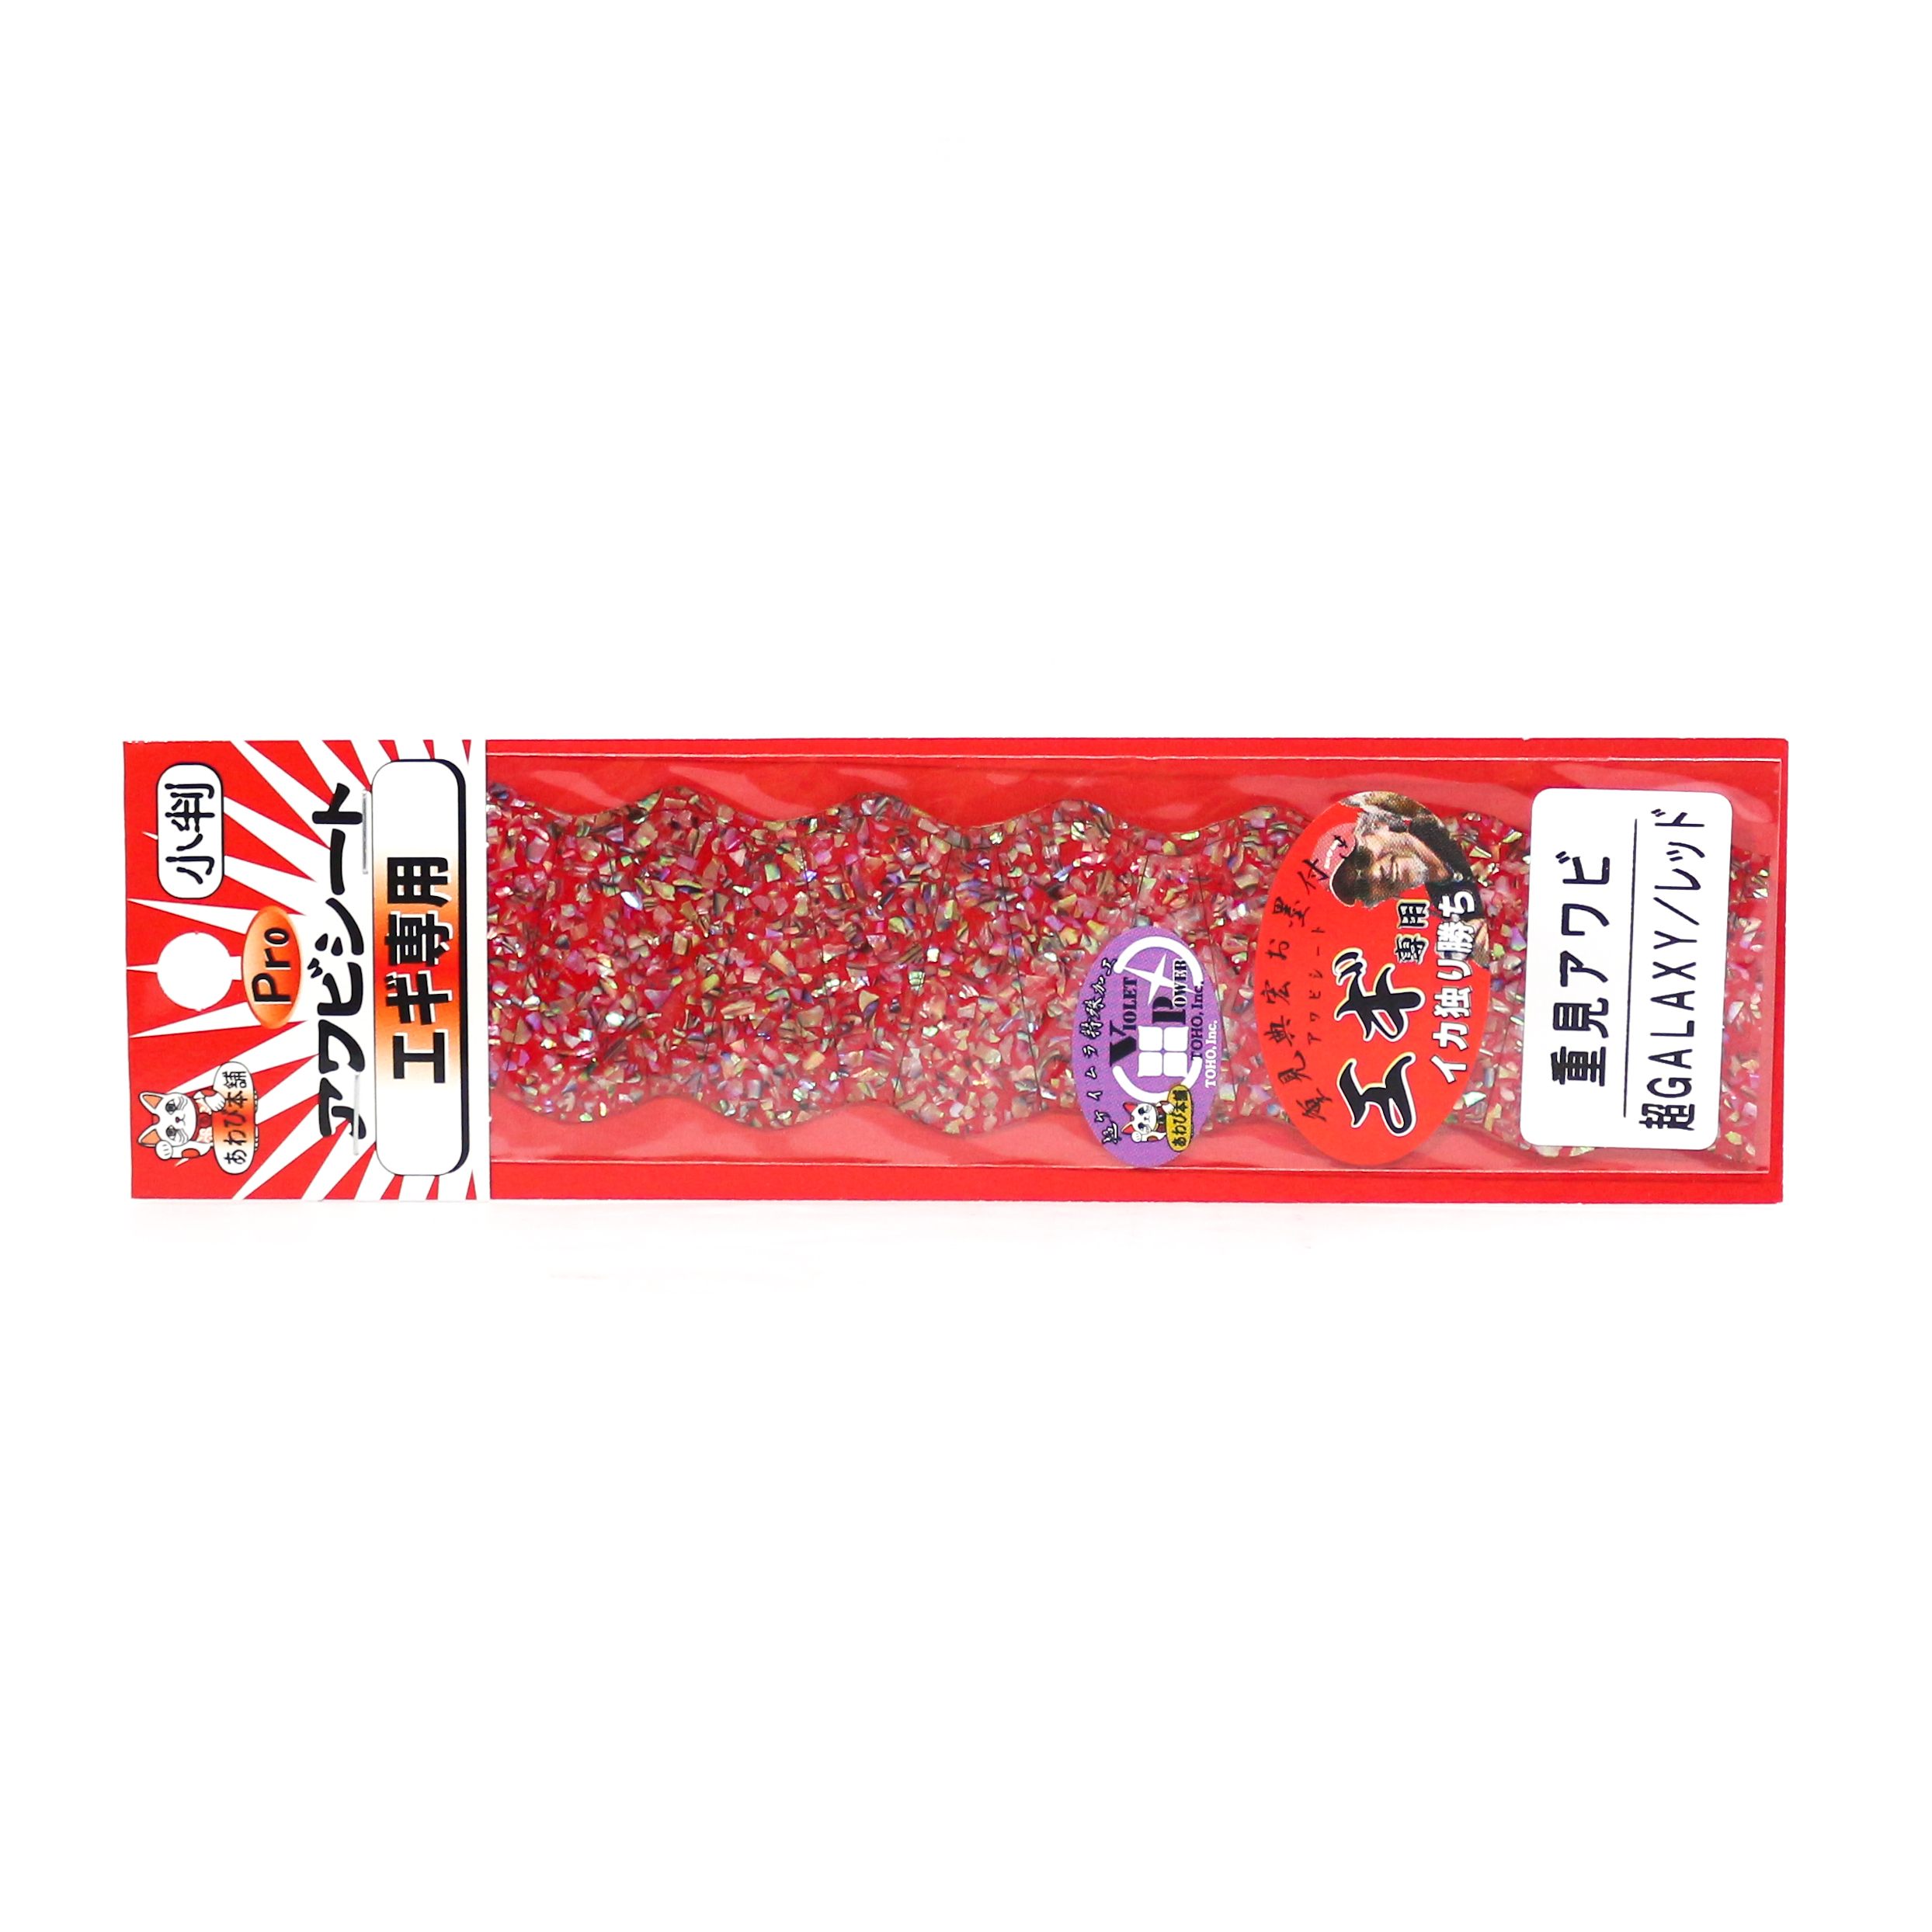 Awabi Honpo Pro Awabi Sheet Shigemi Size S 40 x 140 mm Galaxy/Red (3078)